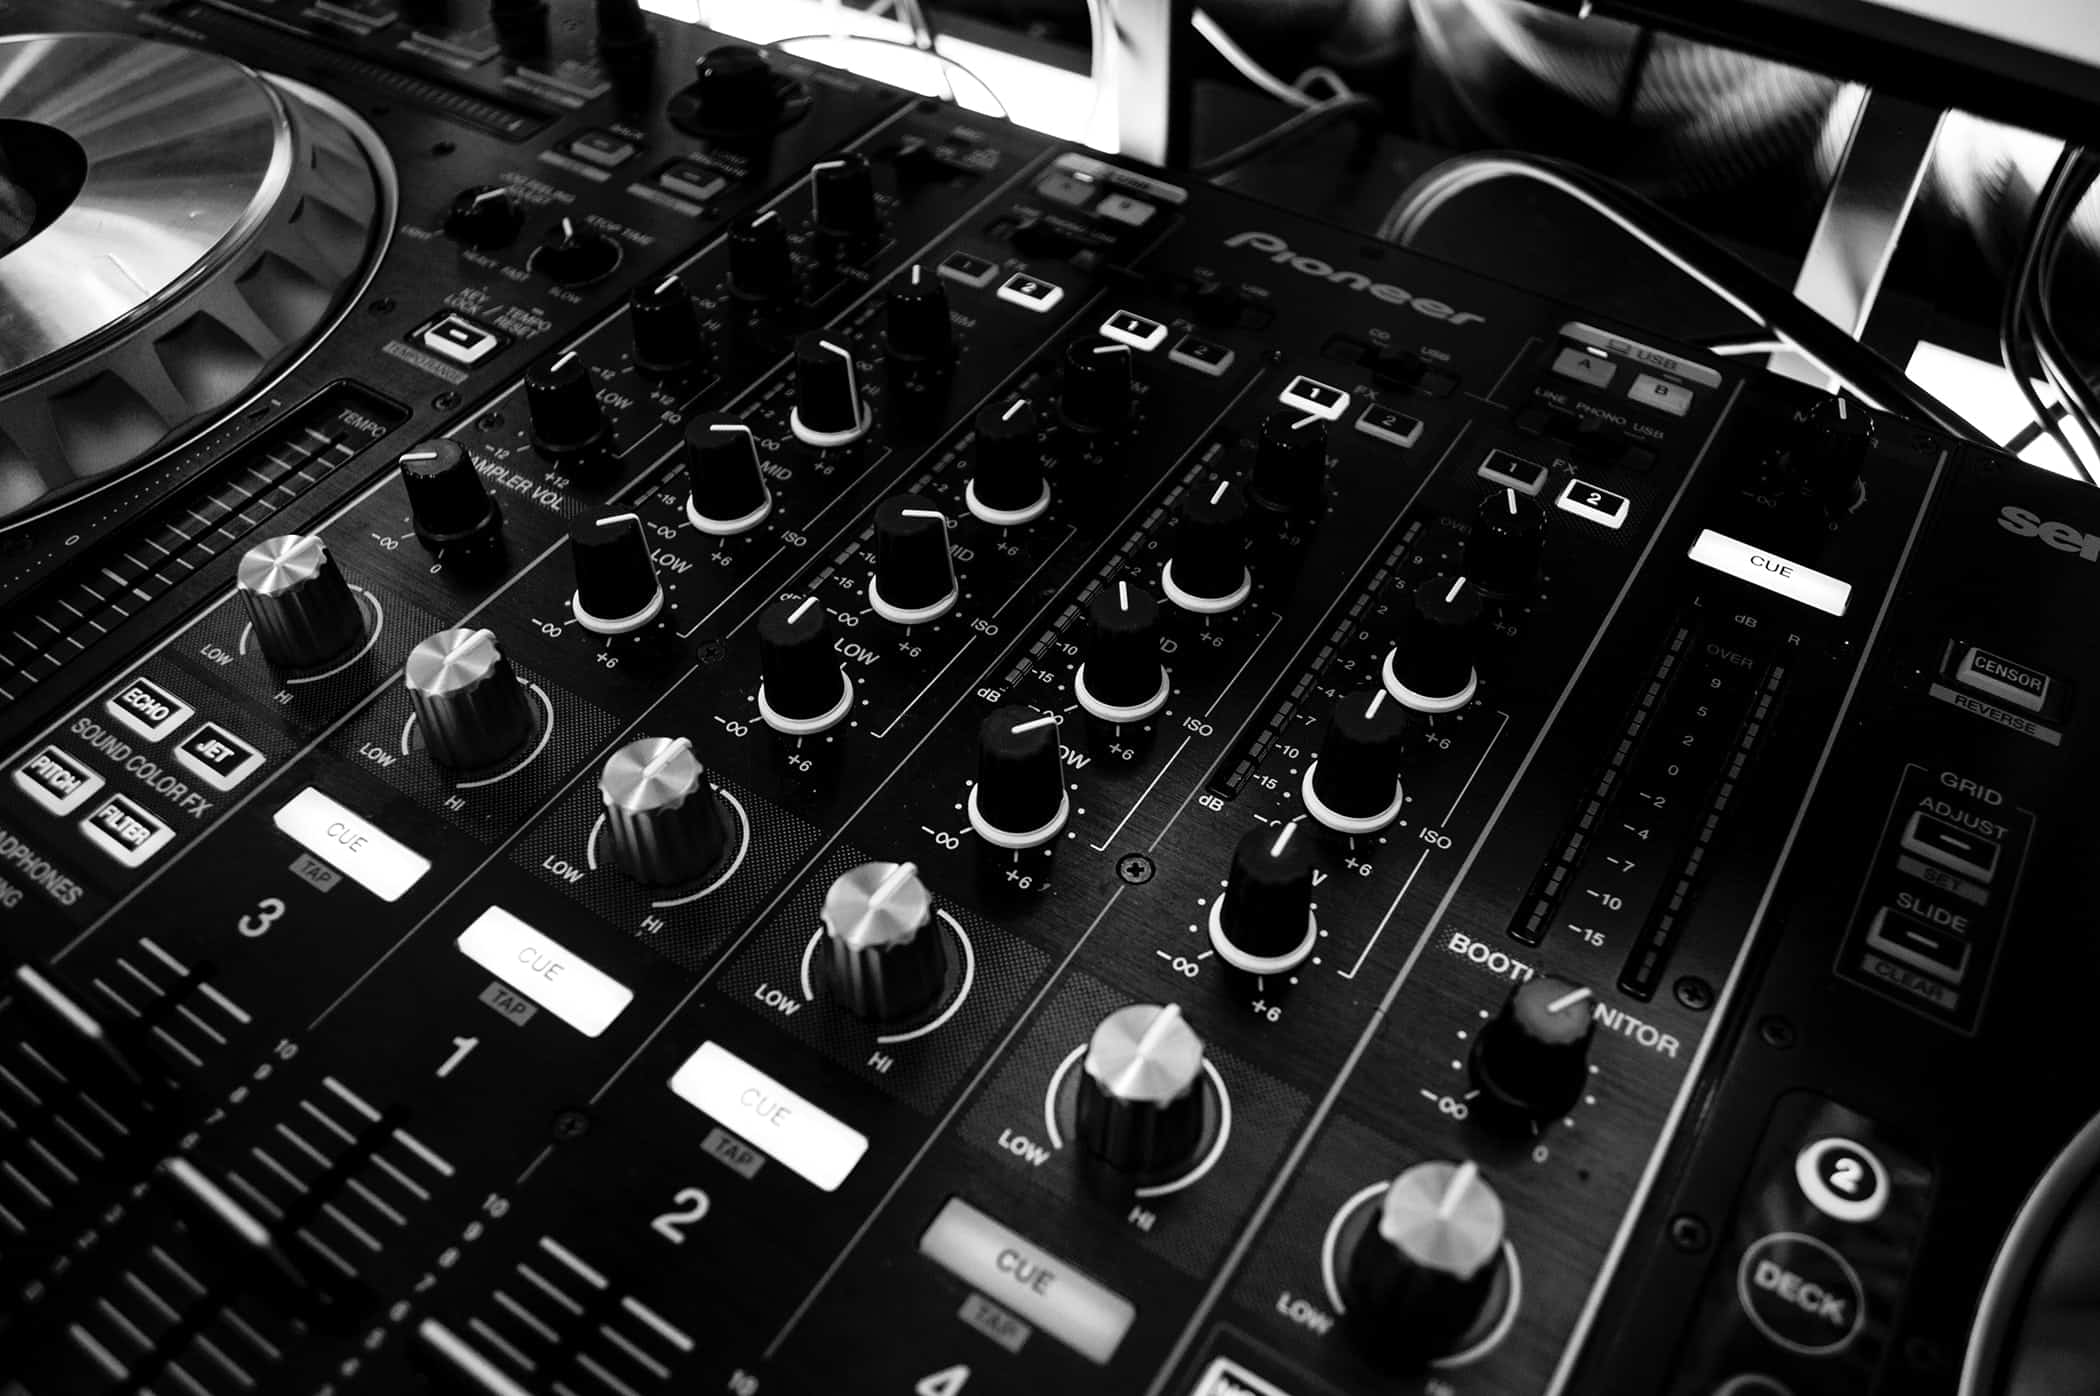 DJ Station black and white